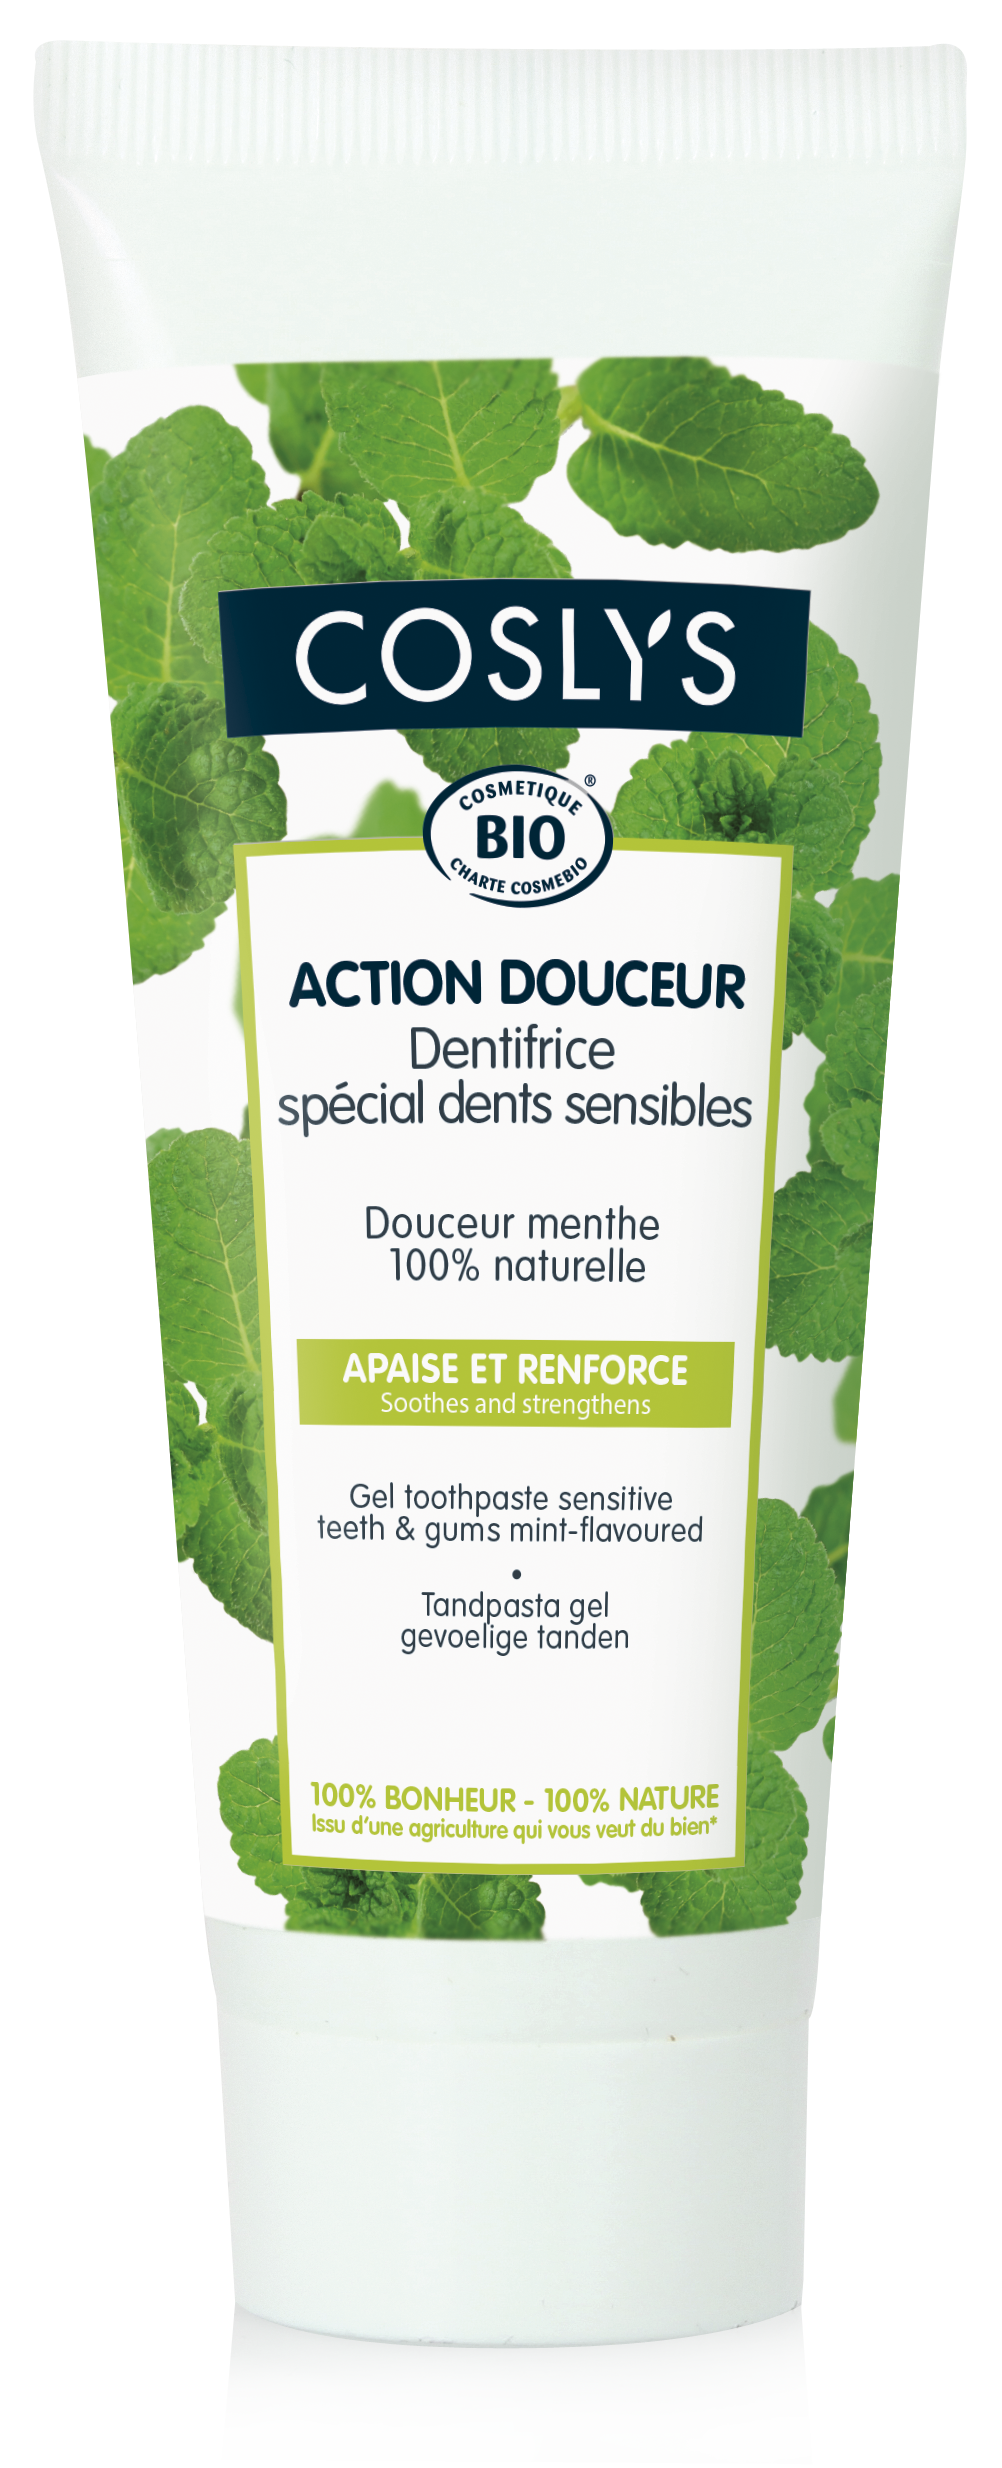 Coslys-Action douceur-dentifrice dents sensibles-gel-dentifrice-75ml